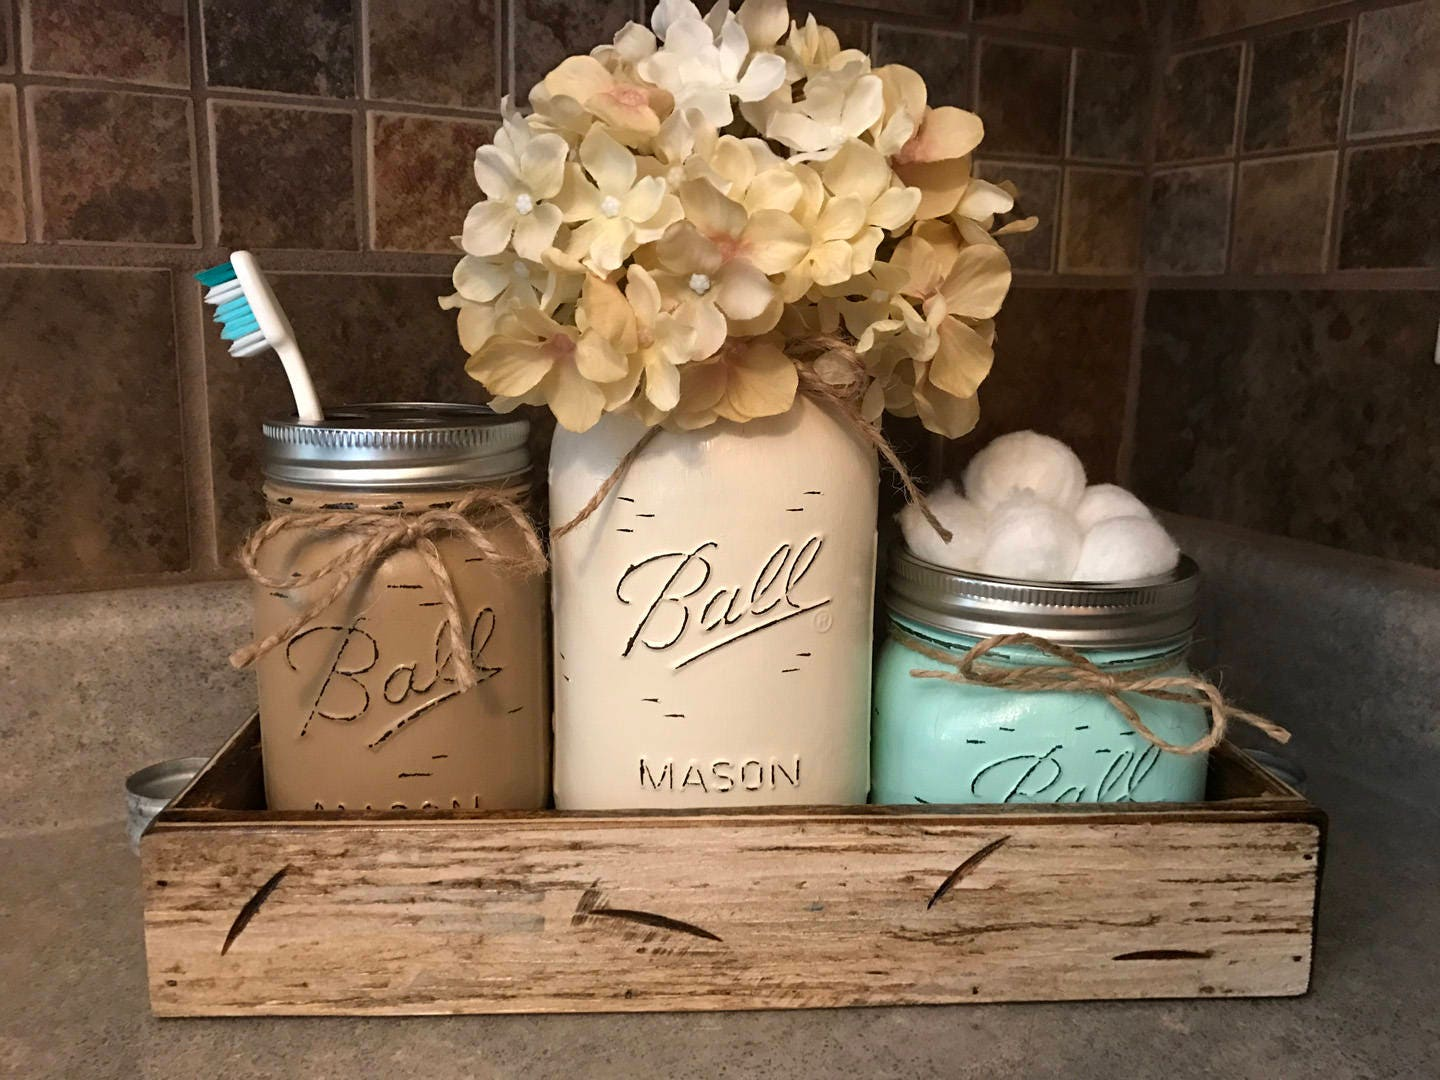 MASON Jar Bathroom SET In Antique White TRAY, Toothbrush Holder, Quart  Vase, Short Pint Cotton Ball Jars, Painted Distressed Counter Decor